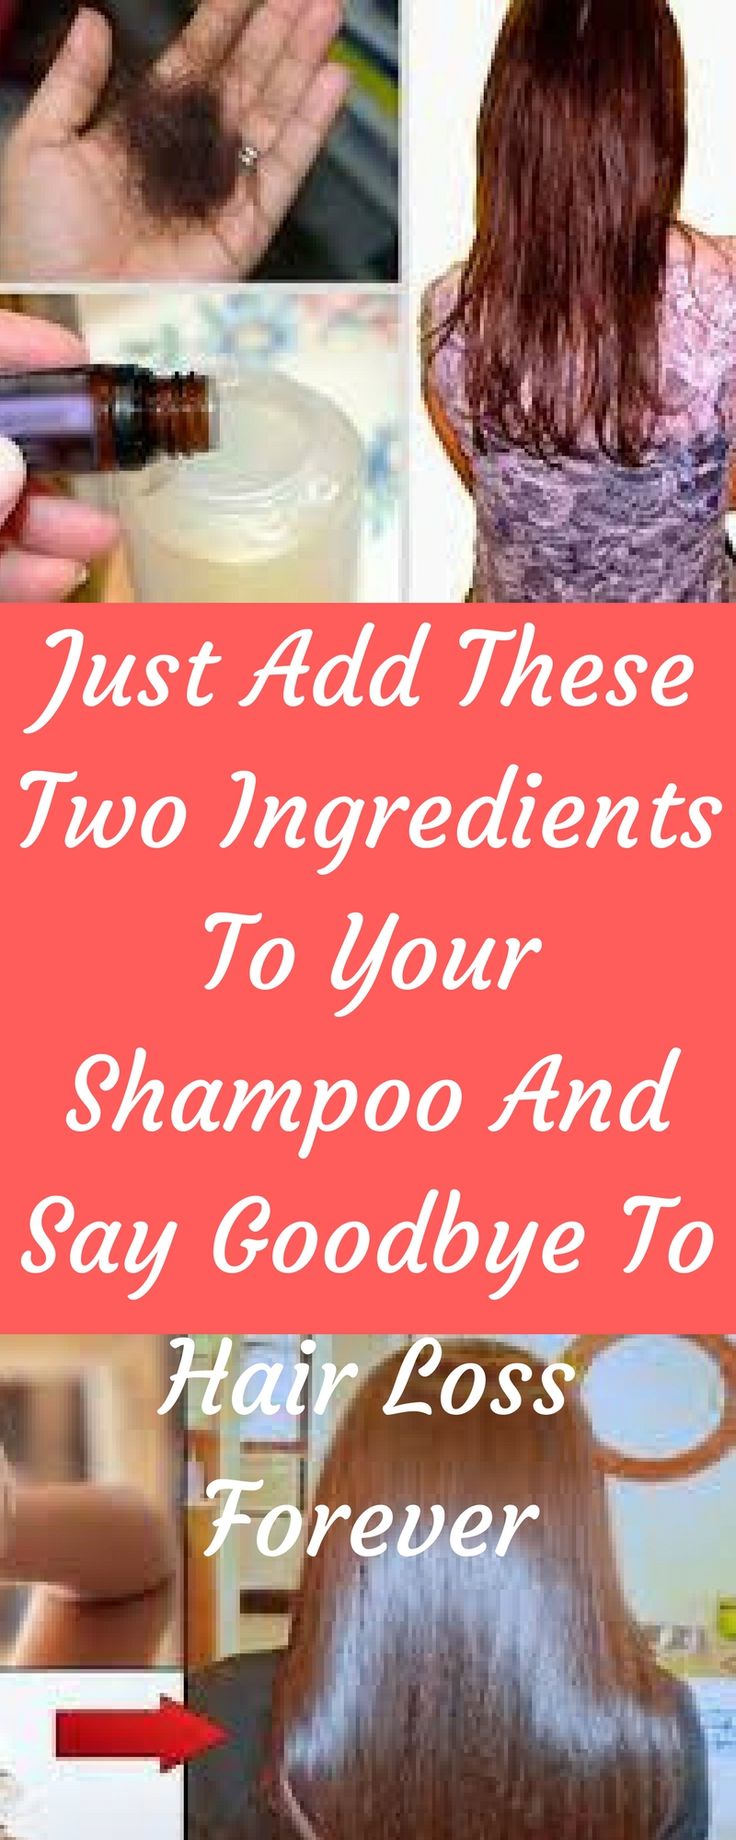 /just-add-two-ingredients-shampoo-say-goodbye-hair-loss-forever/